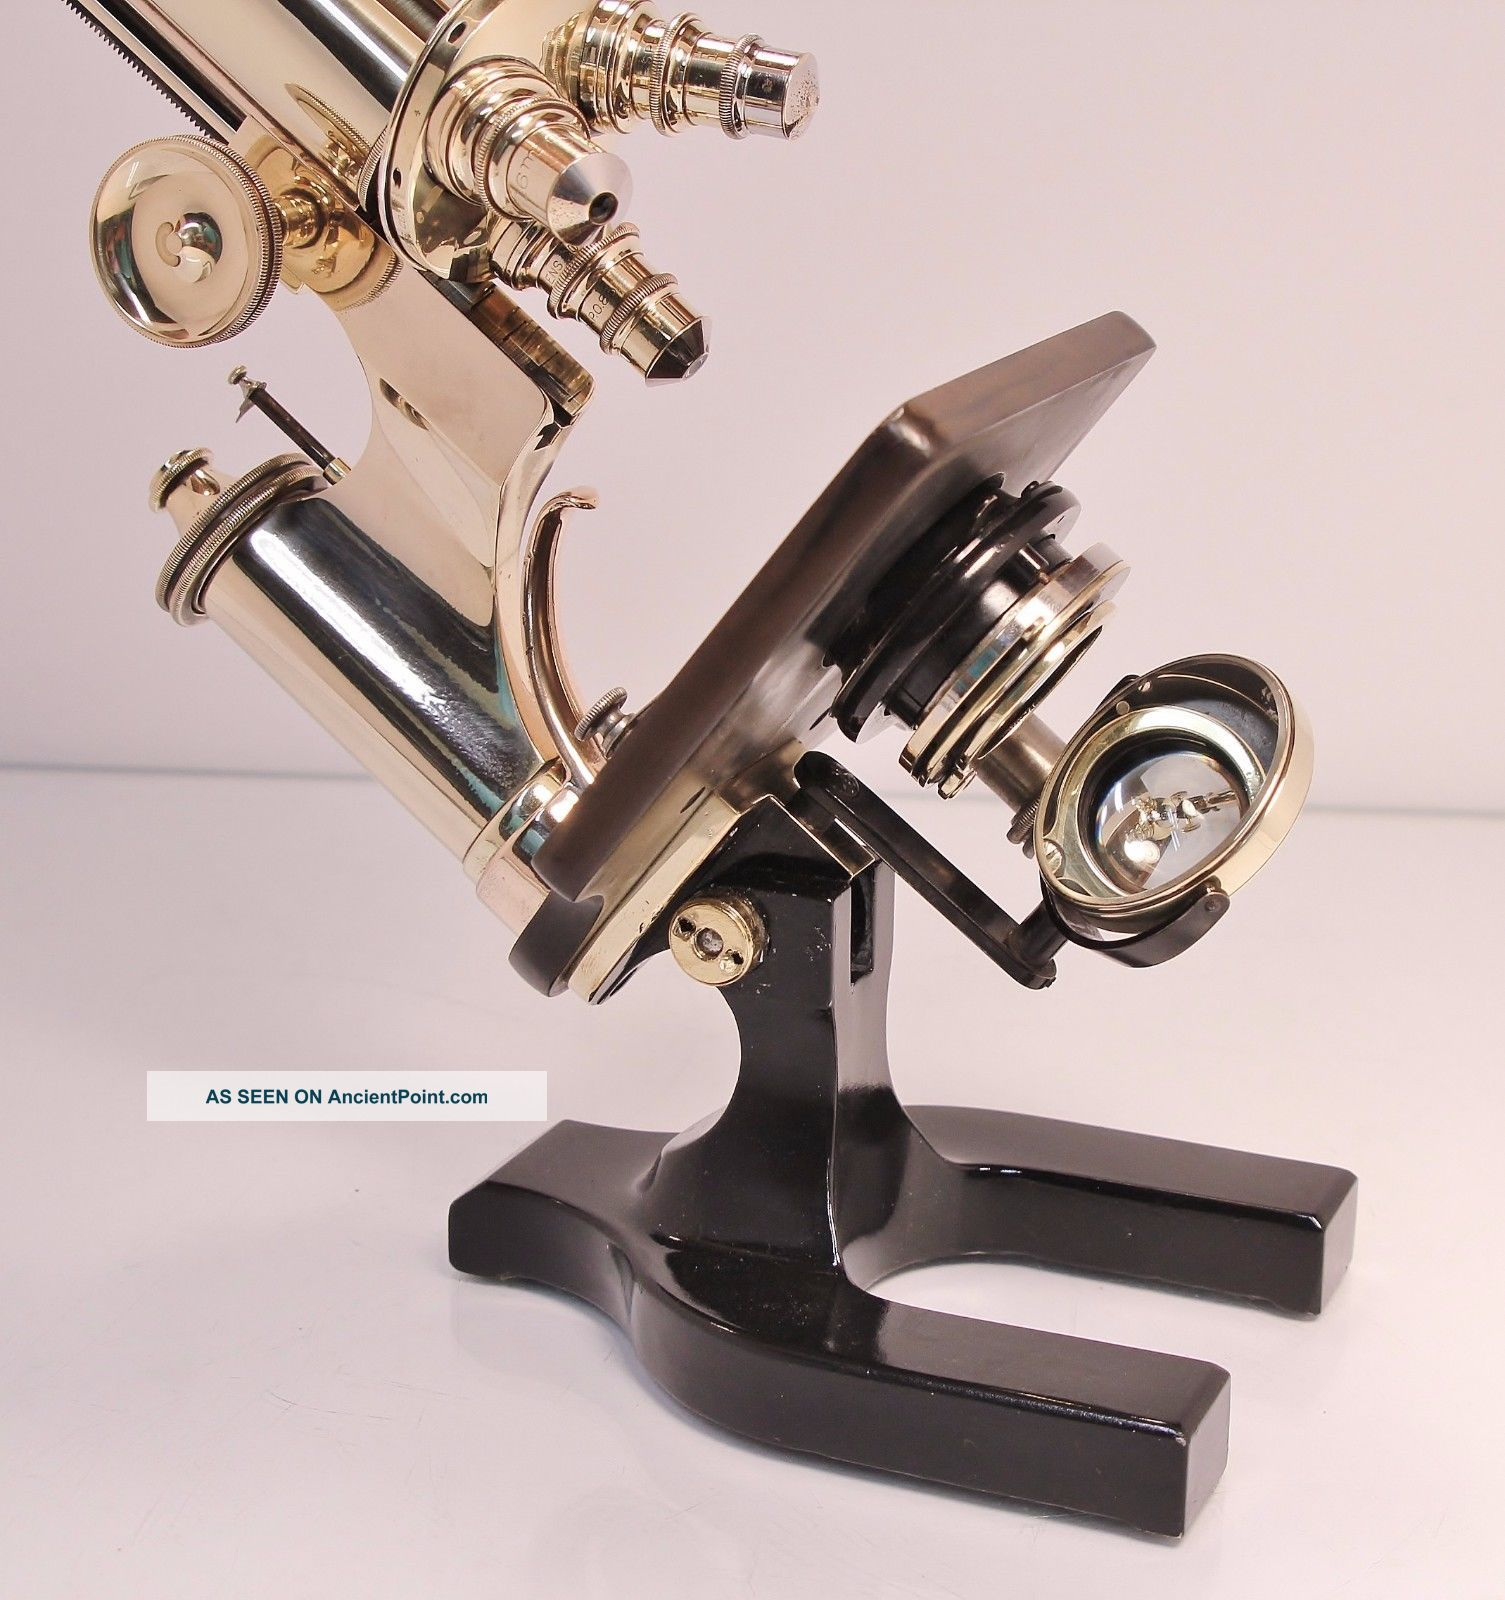 Antique Vintage Spencer Microscope Microscopes & Lab Equipment photo